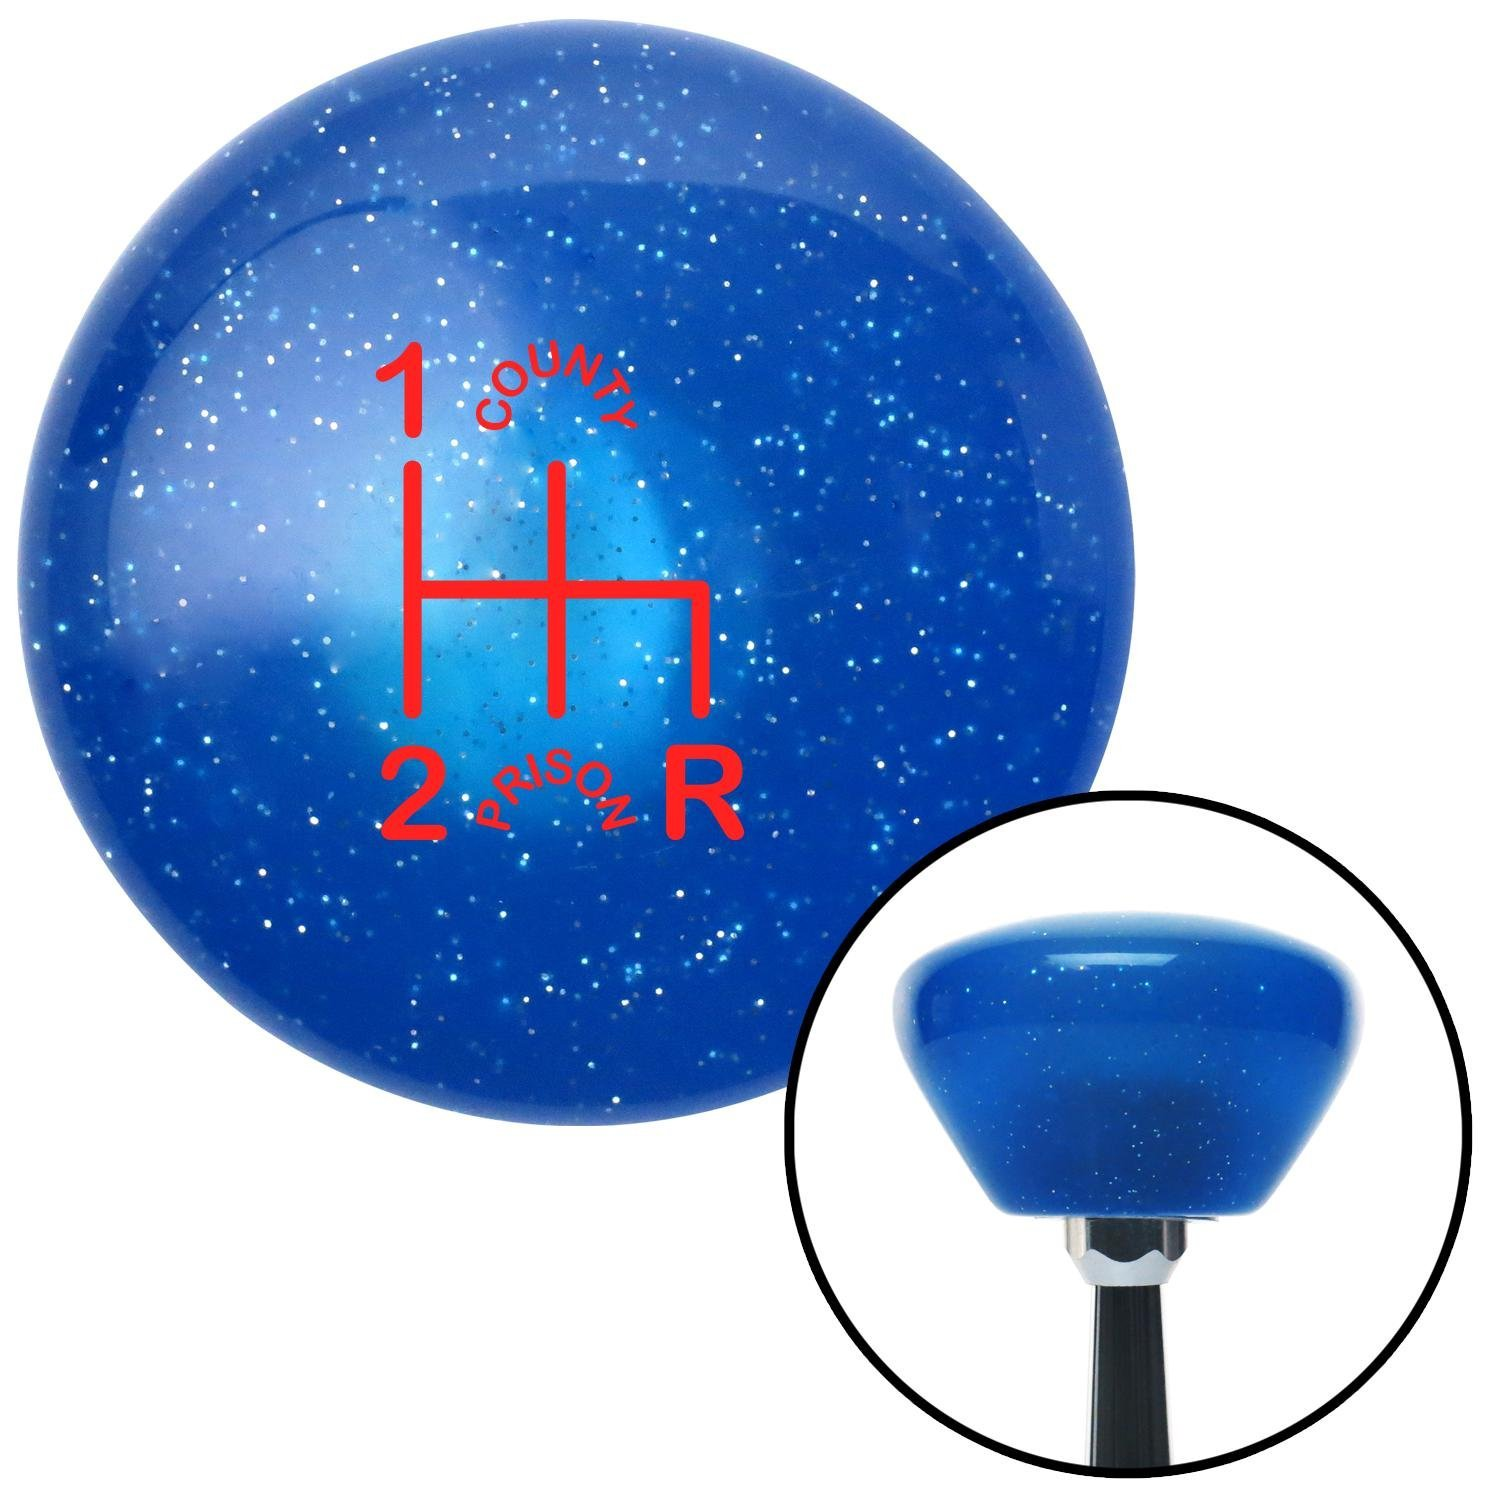 American Shifter 192230 Blue Retro Metal Flake Shift Knob with M16 x 1.5 Insert Red Shift Pattern CP6n